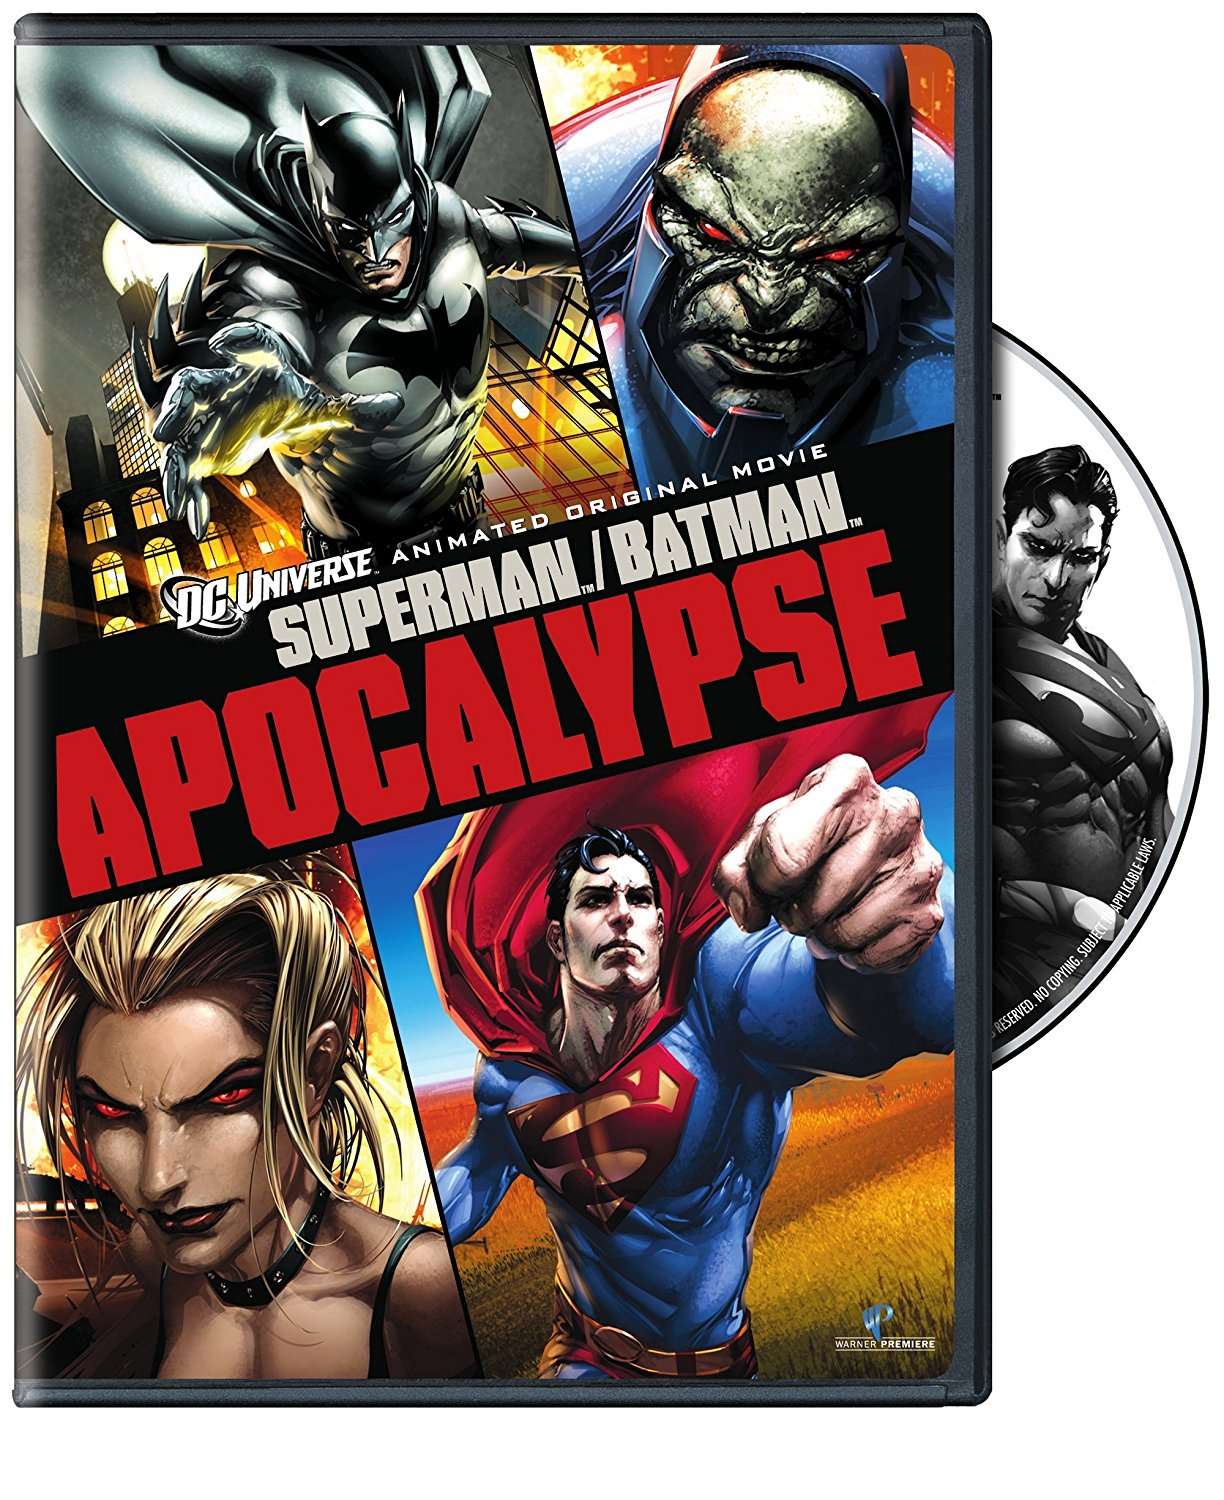 Superman Batman Apocalypse.jpg